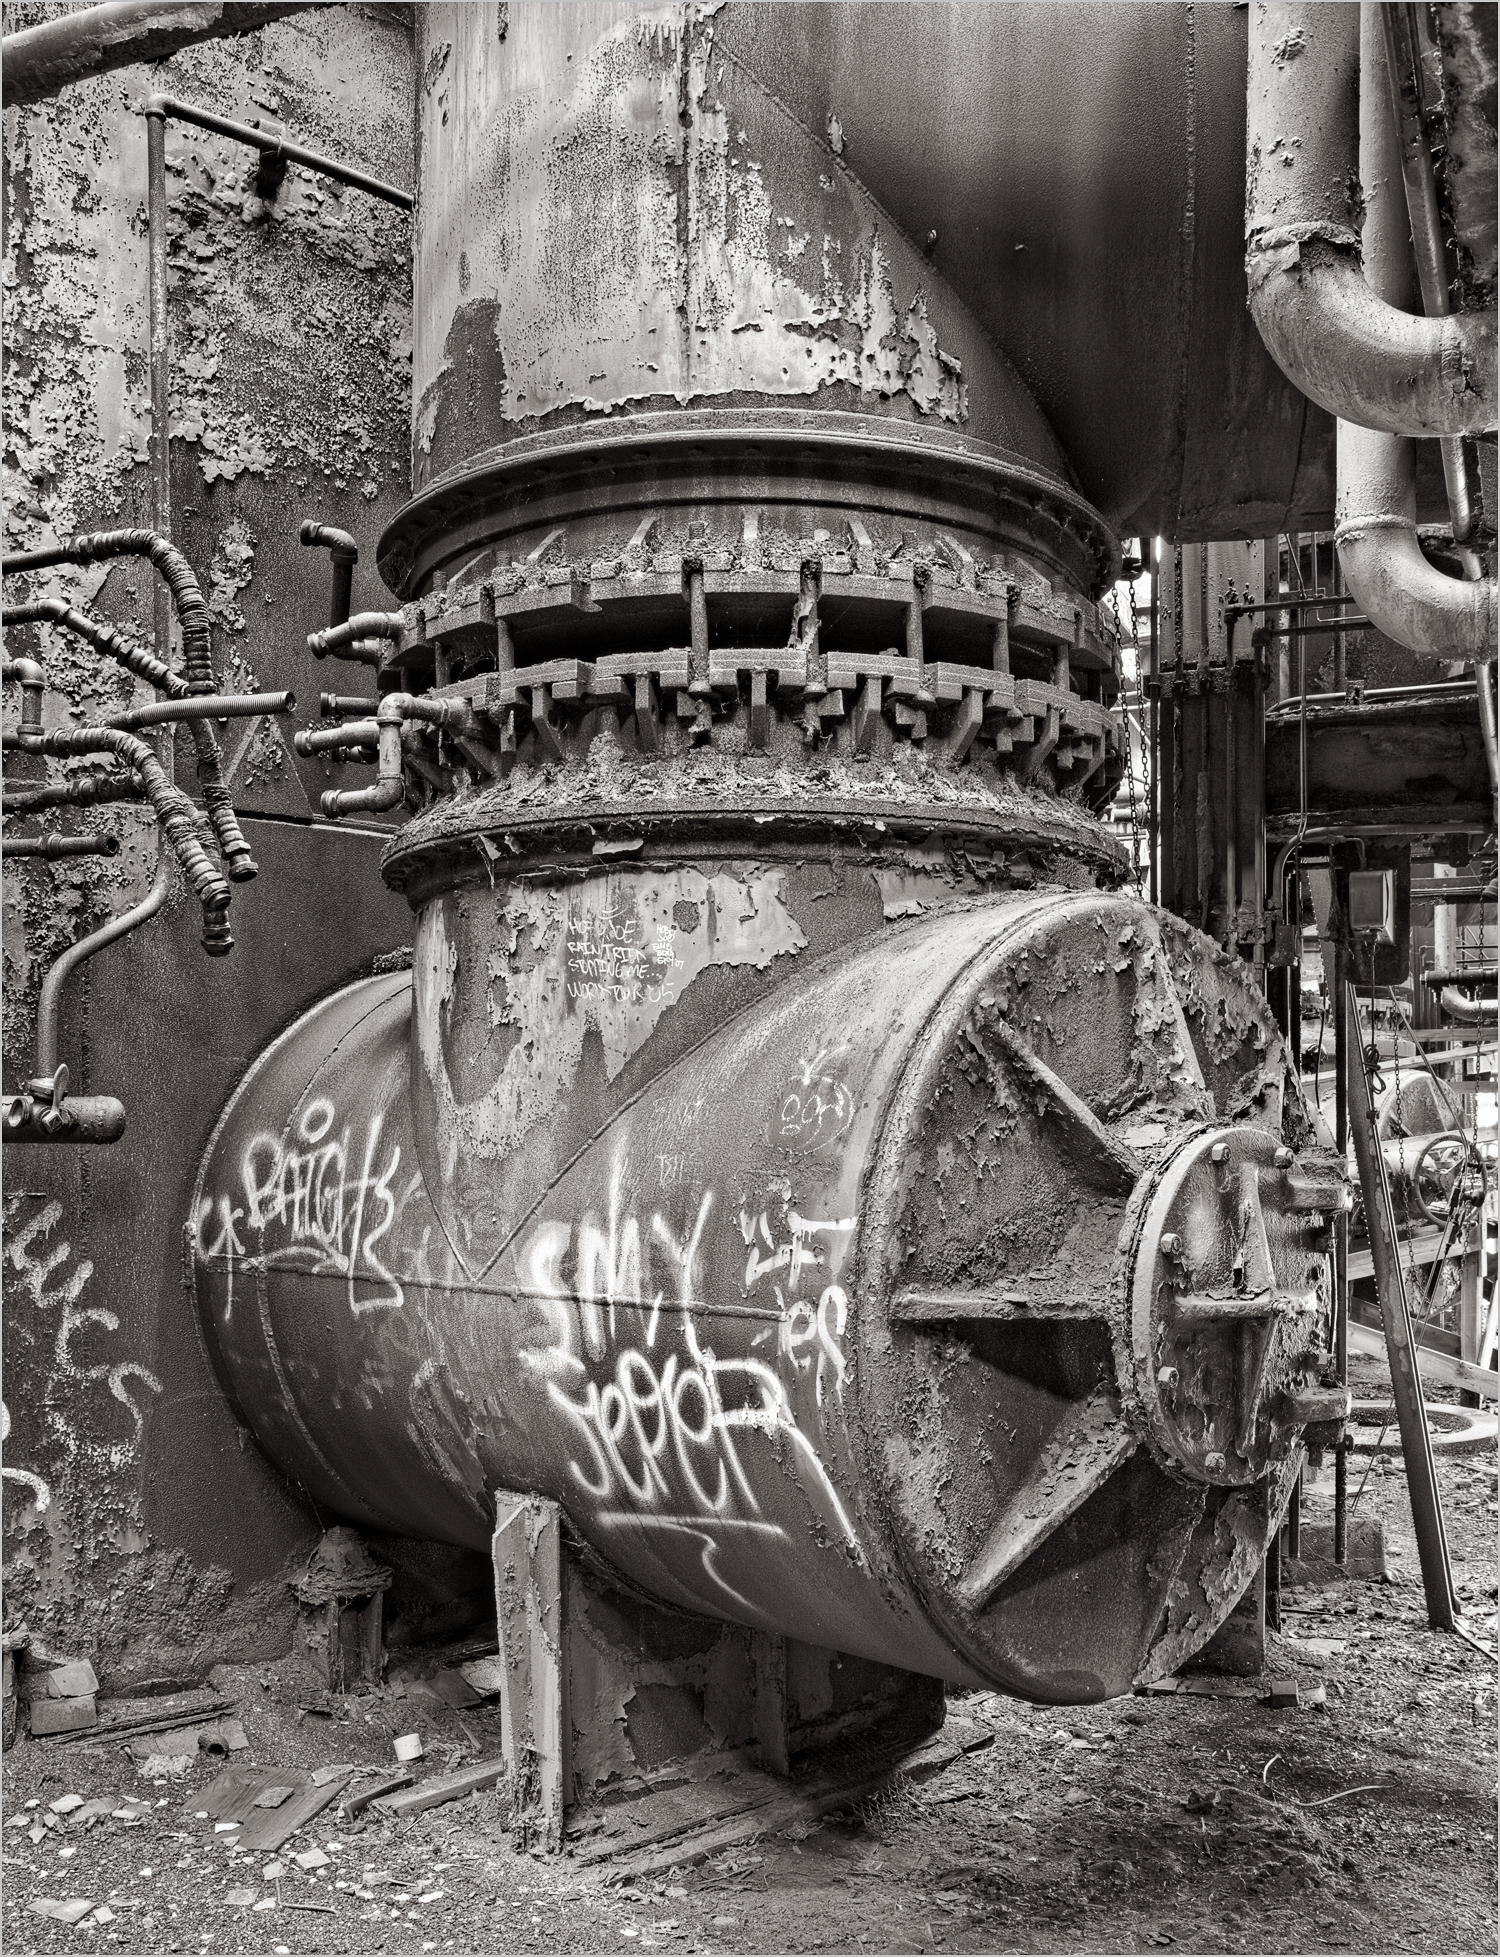 A graffiti covered stove in the Stove Room at the Carrie Furnace.